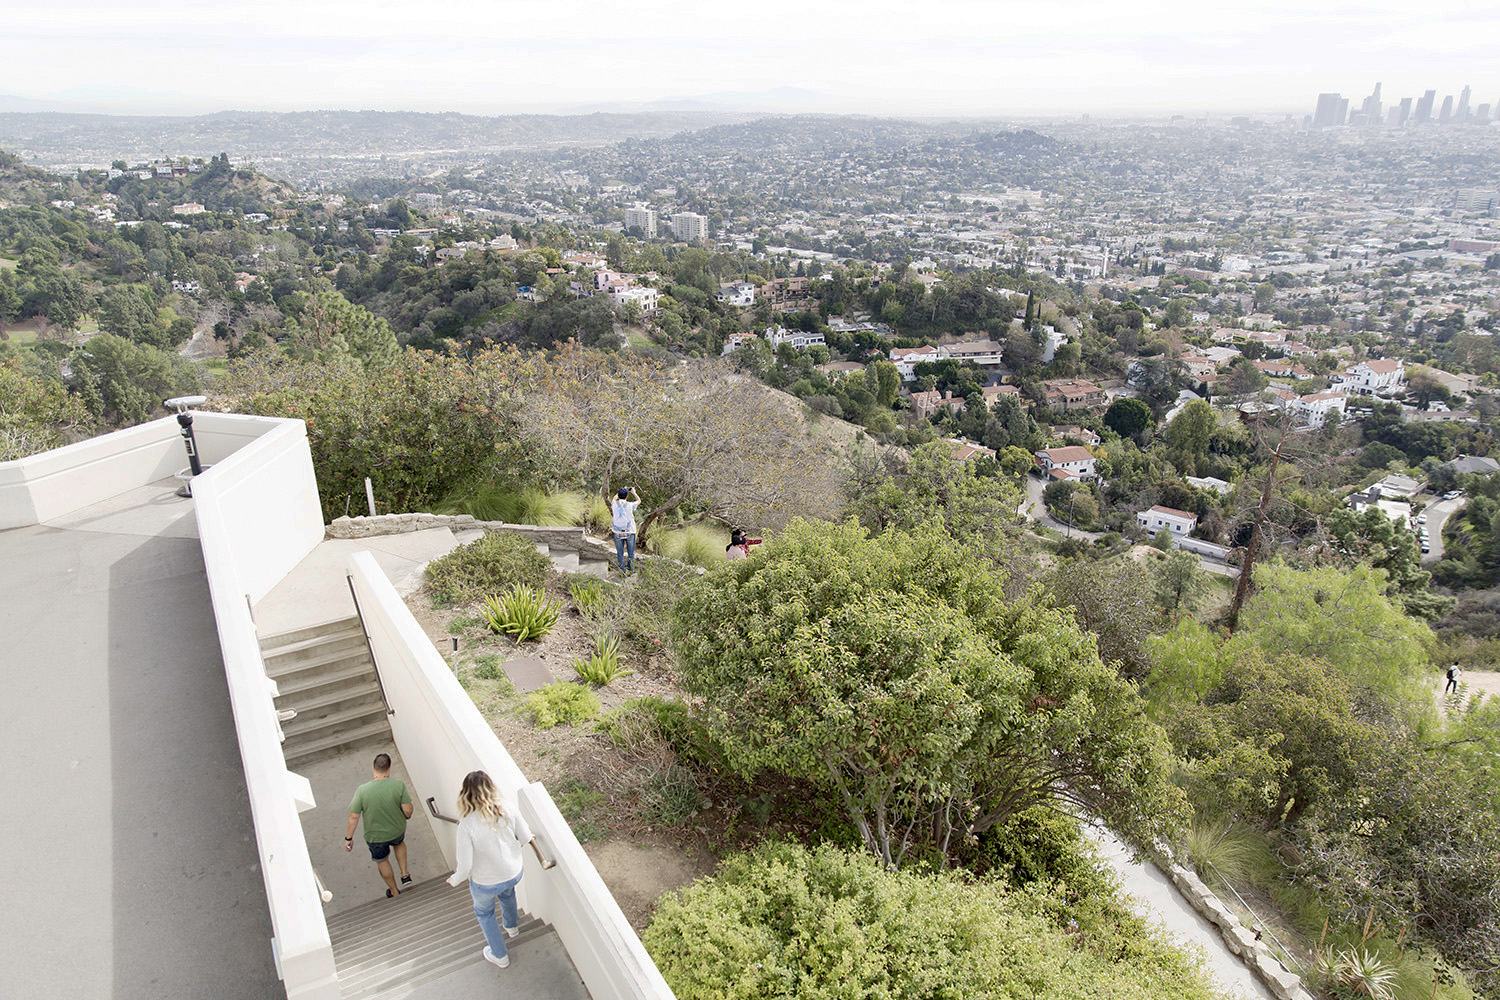 People enjoy the view over Los Angeles at the Griffith Observatory by Rebecca Stumpf, Denver Boulder Colorado Editorial and Commercial Photographer.